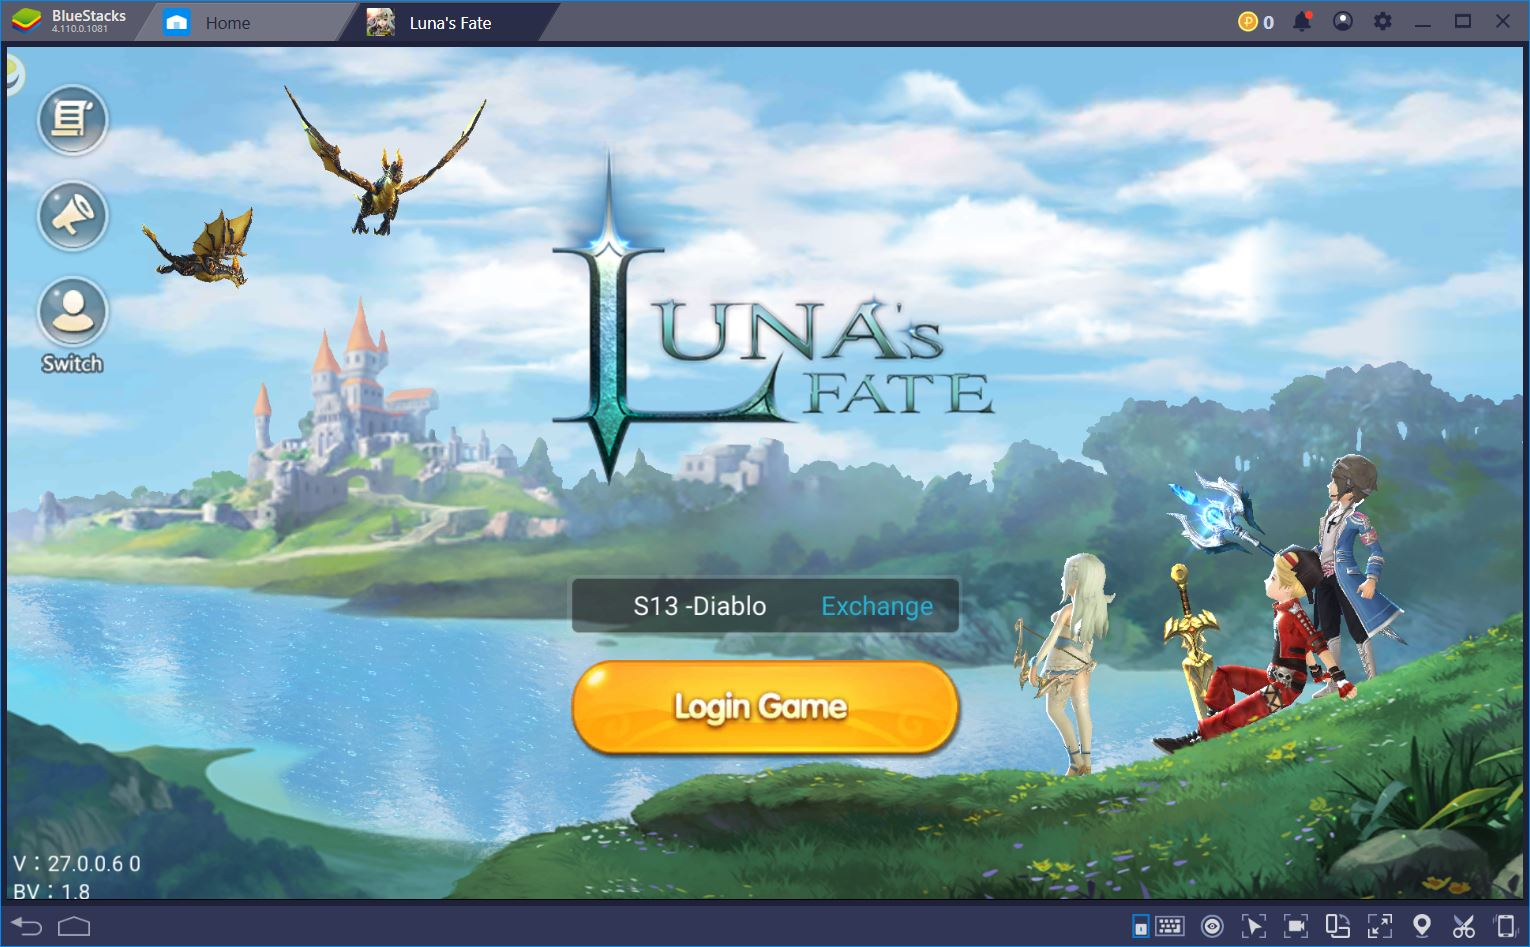 How to Play Luna's Fate on BlueStacks